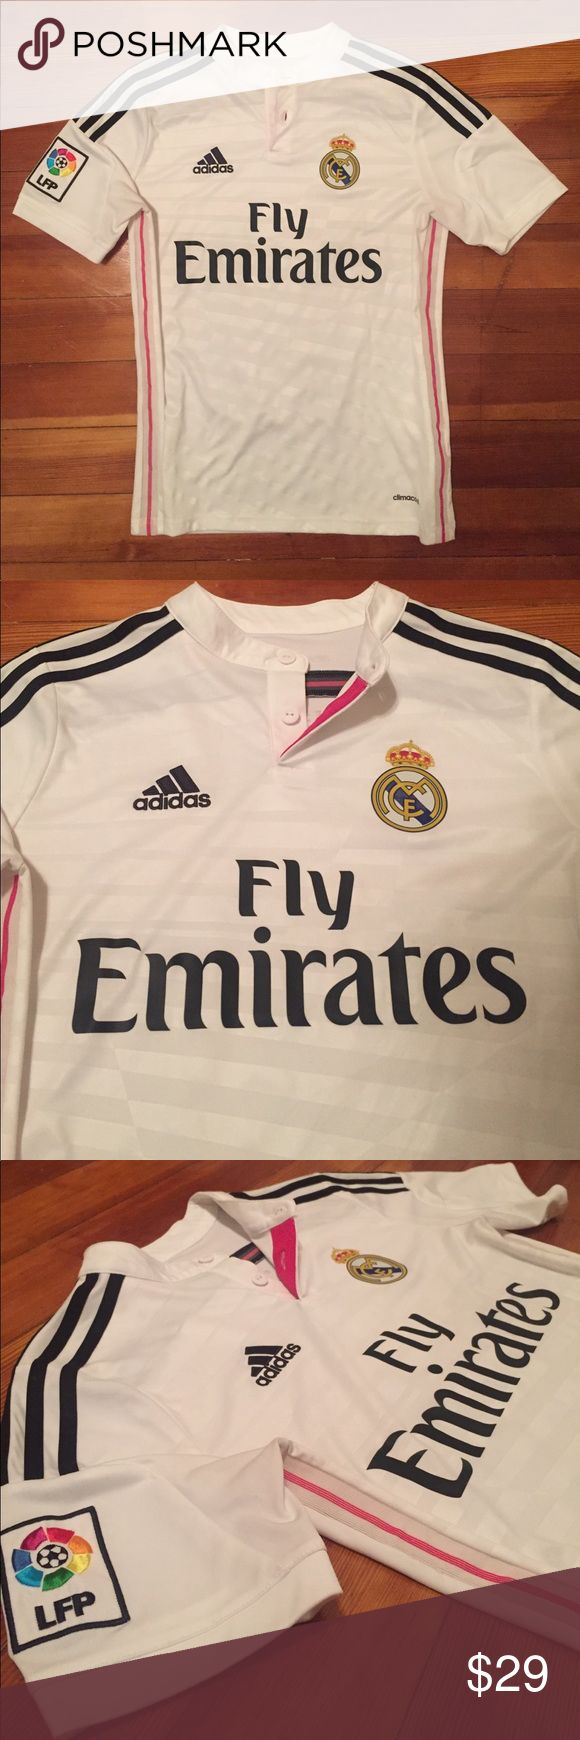 Adidas Real Madrid James Rodriguez Football Jersey This is an authentic, brand new, never been worn Real Madrid football jersey with James Rodriguez's name and number. This is white with pink highlights. This was bought straight from the Real Madrid online store. Youth size large, fits like a women's small. adidas Tops